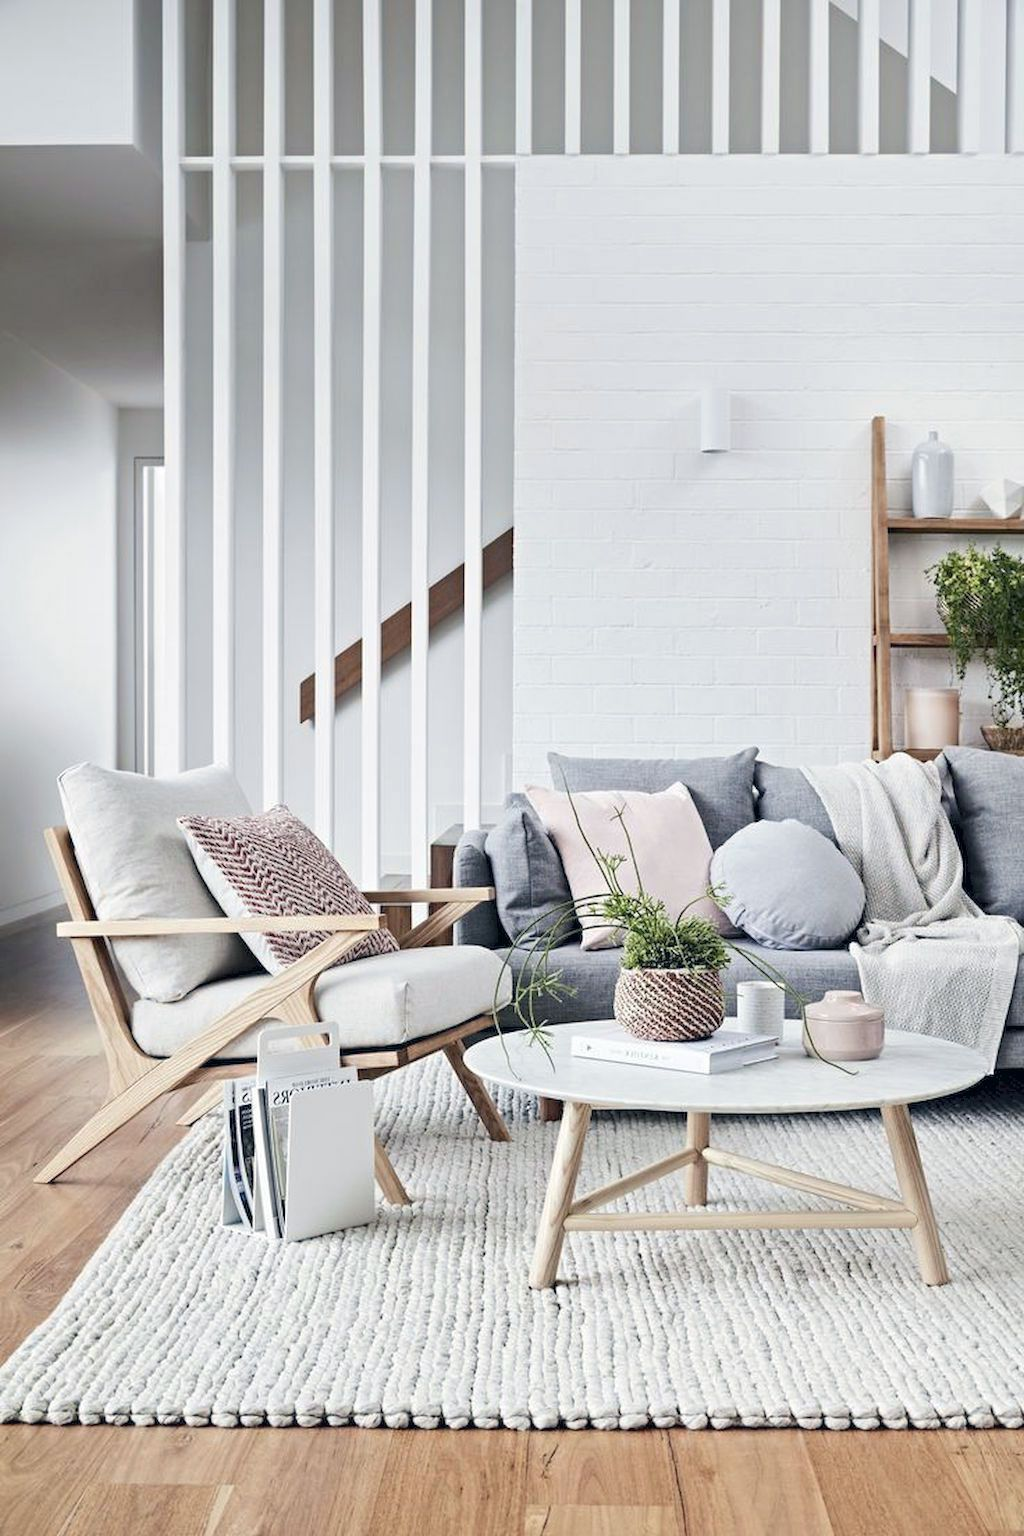 28 Admirable Contemporary Scandinavian Living Rooms Ideas Living Room Scandinavian Minimalist Living Room Living Room Themes